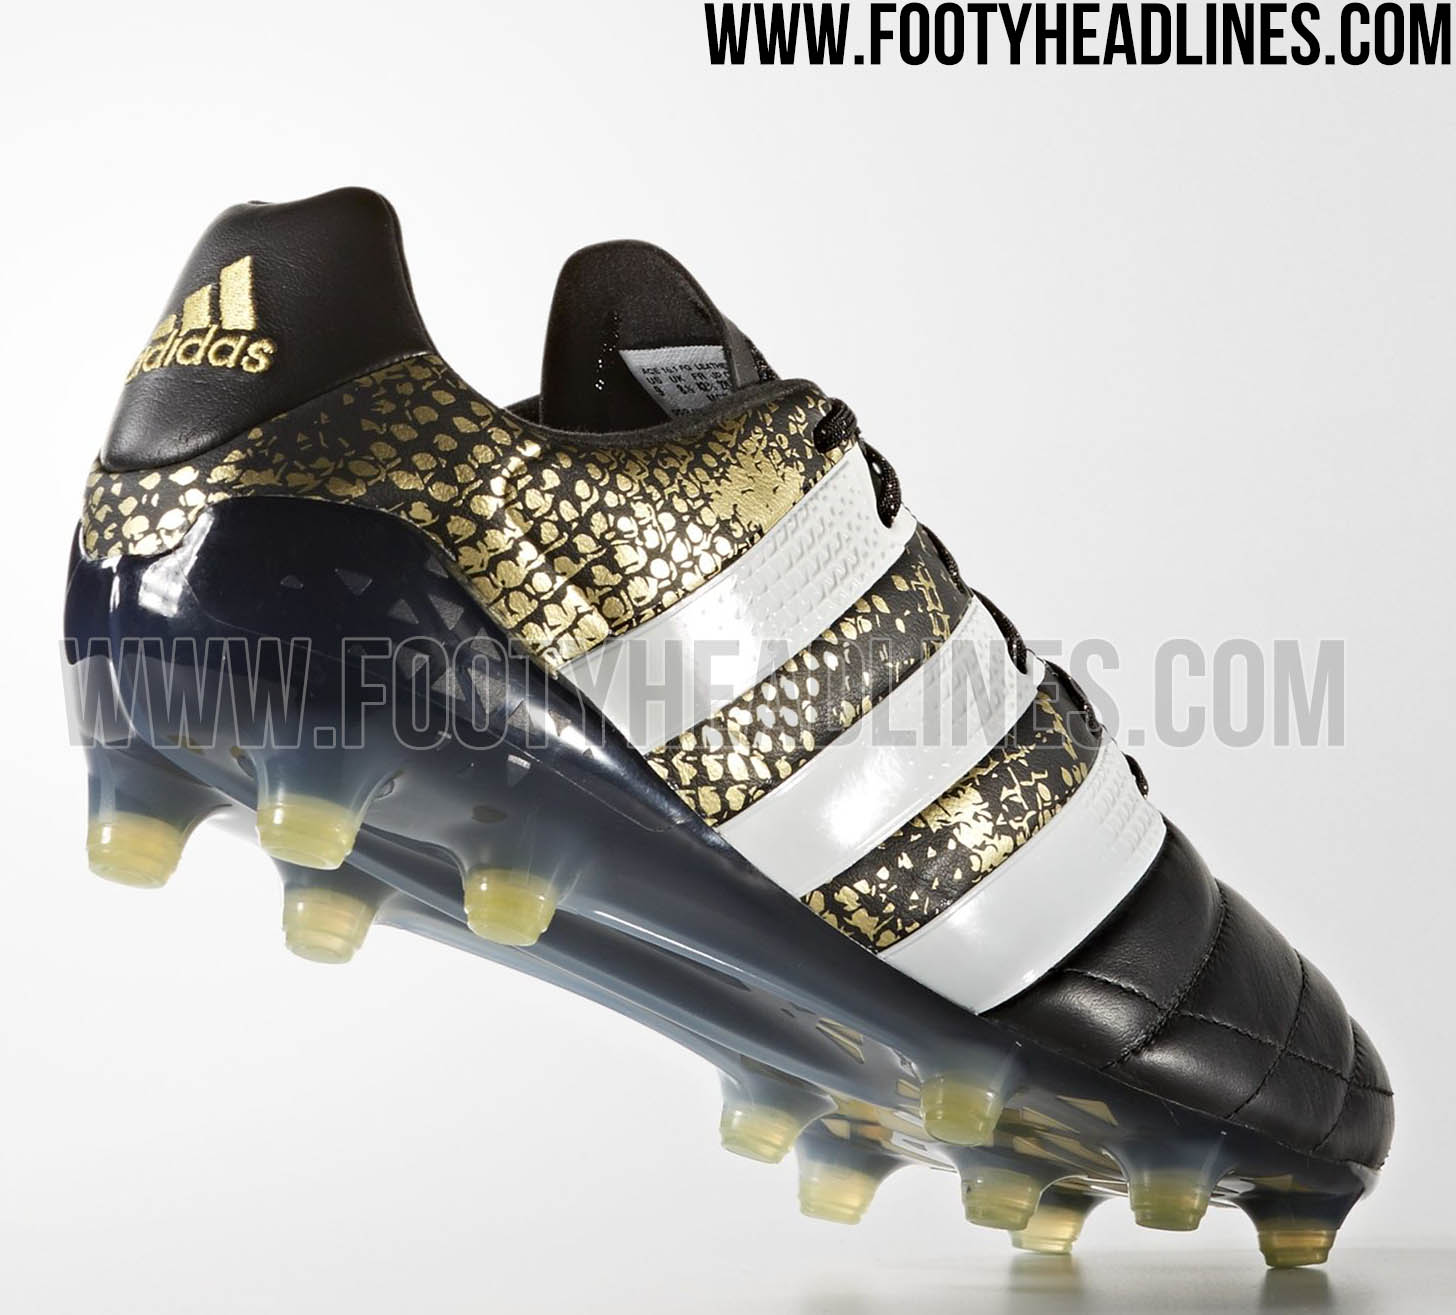 ... cheapest black gold adidas ace 2016 2017 leather stellar pack boots  released footy headlines 41aa9 a92fc 2eeafd9685b88